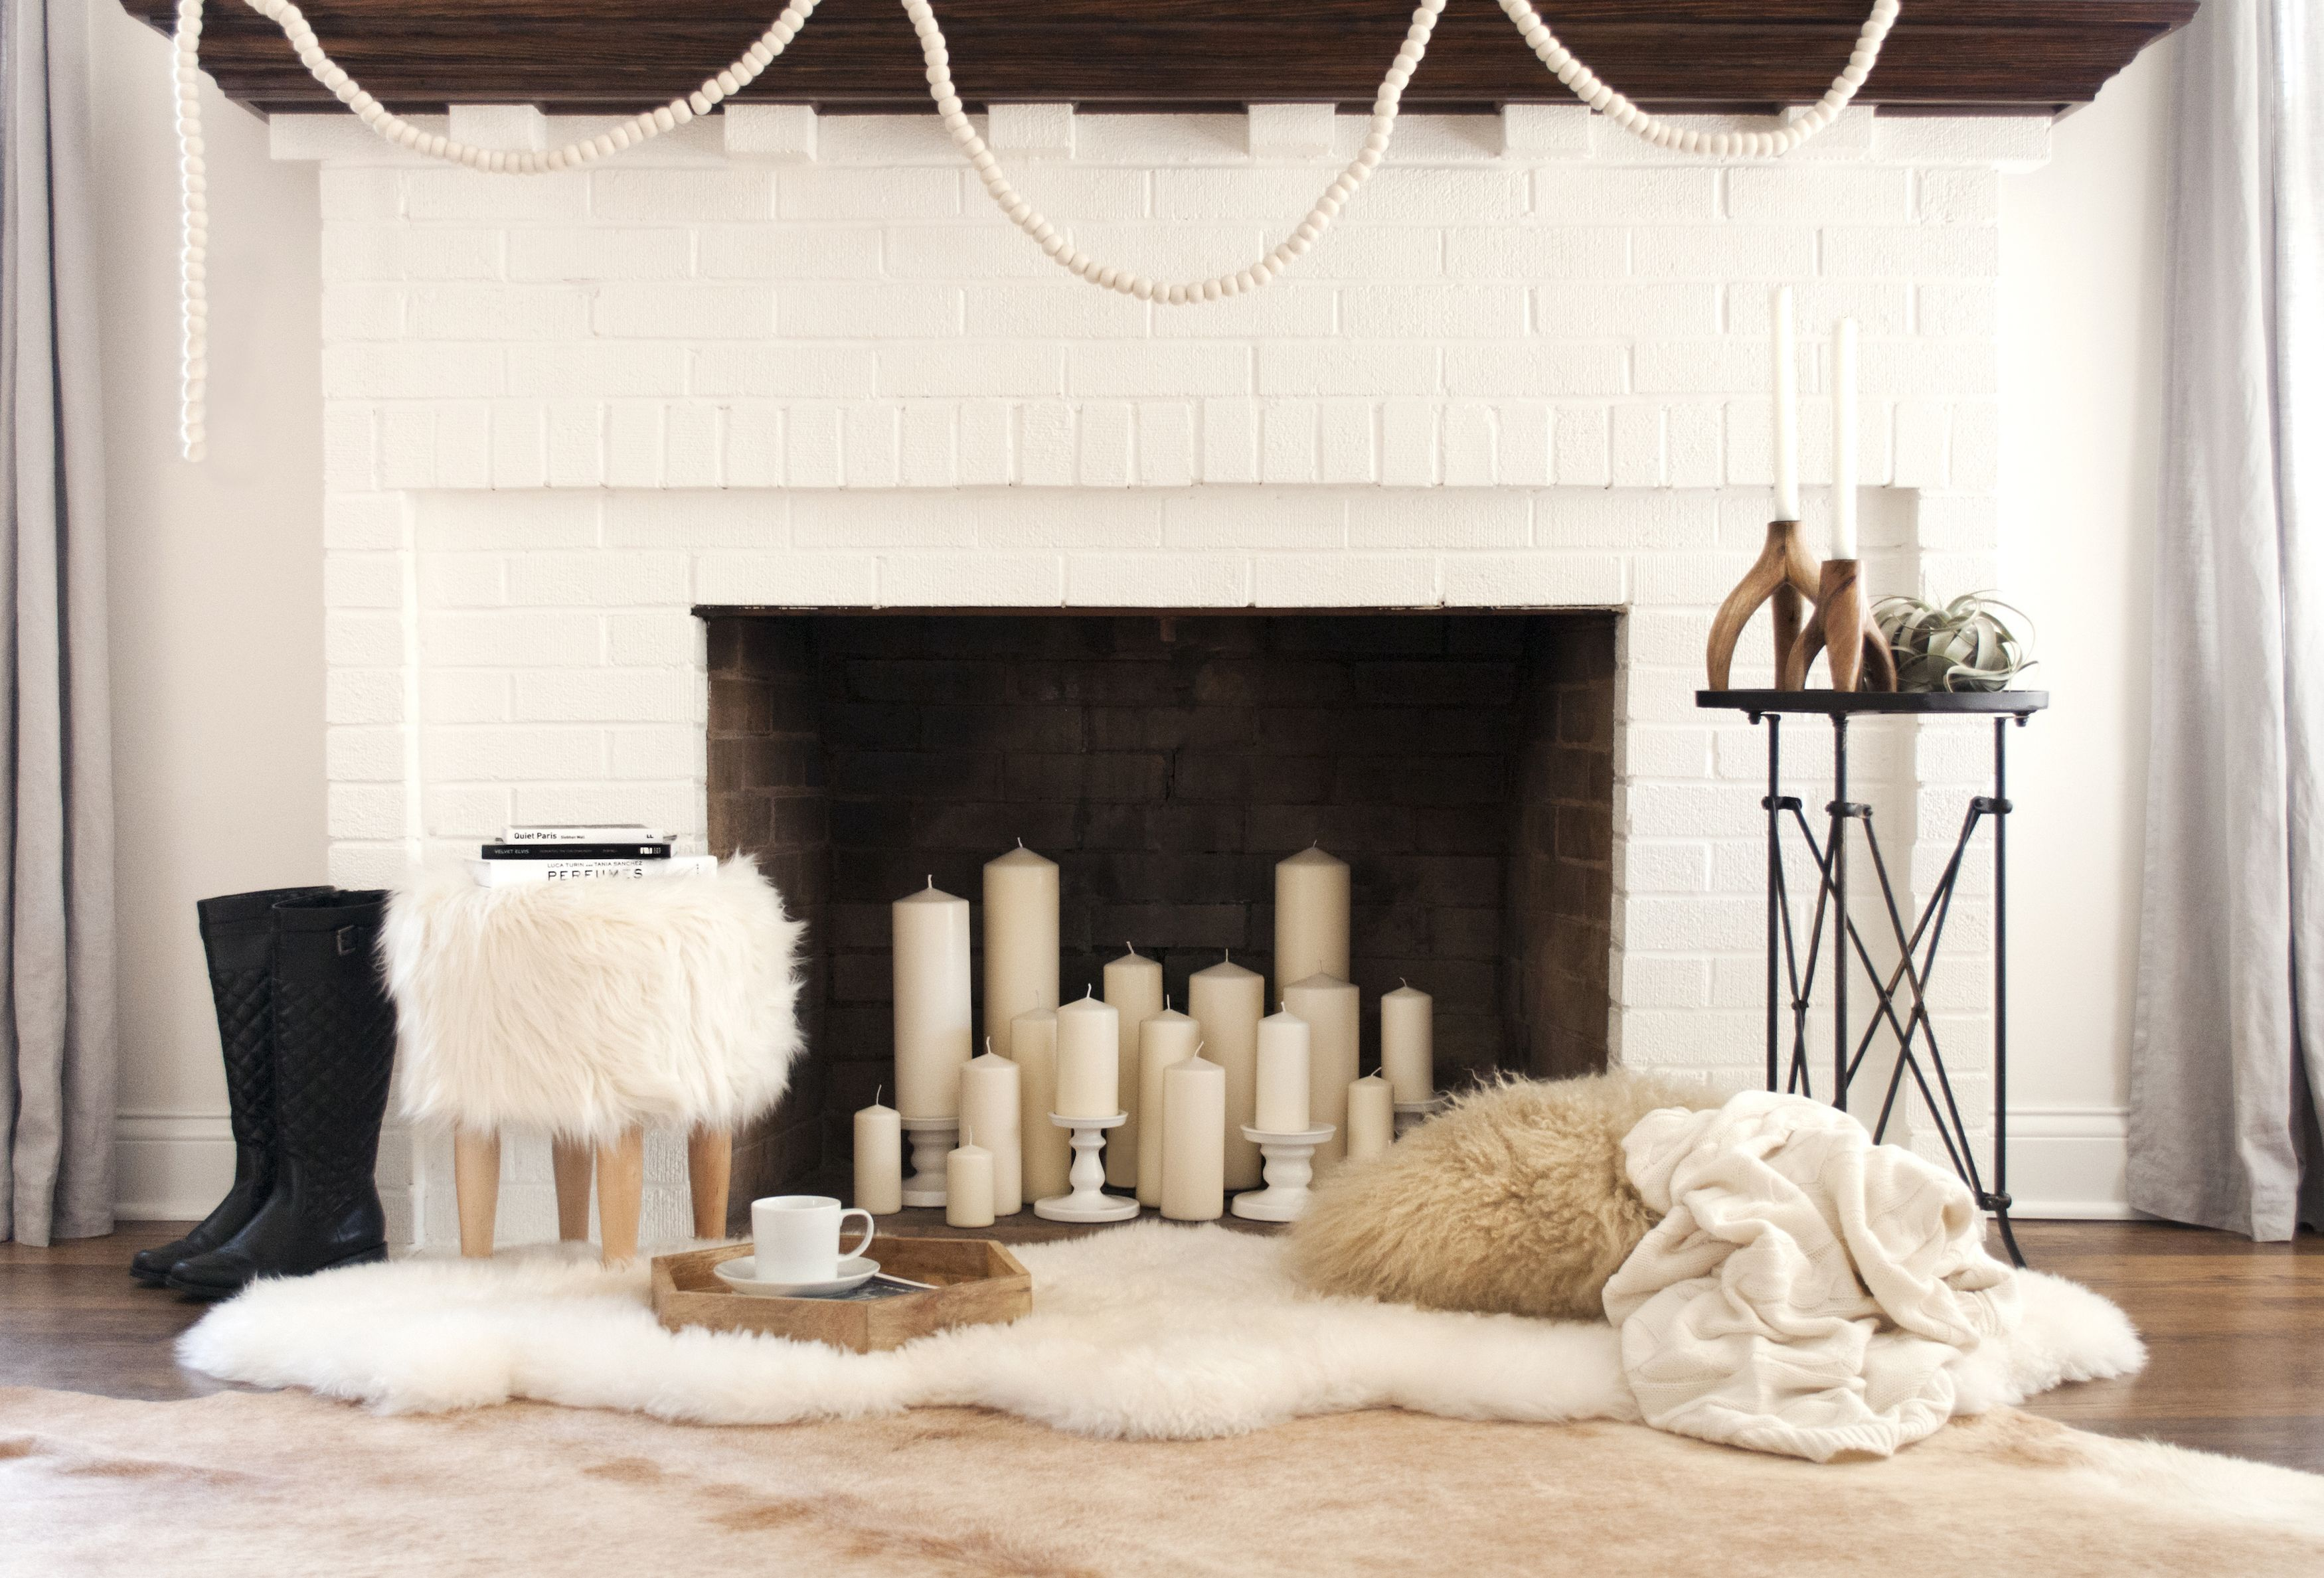 decoration ideas for small living room with fireplace bob discount furniture sets 12 decorating nonworking design a